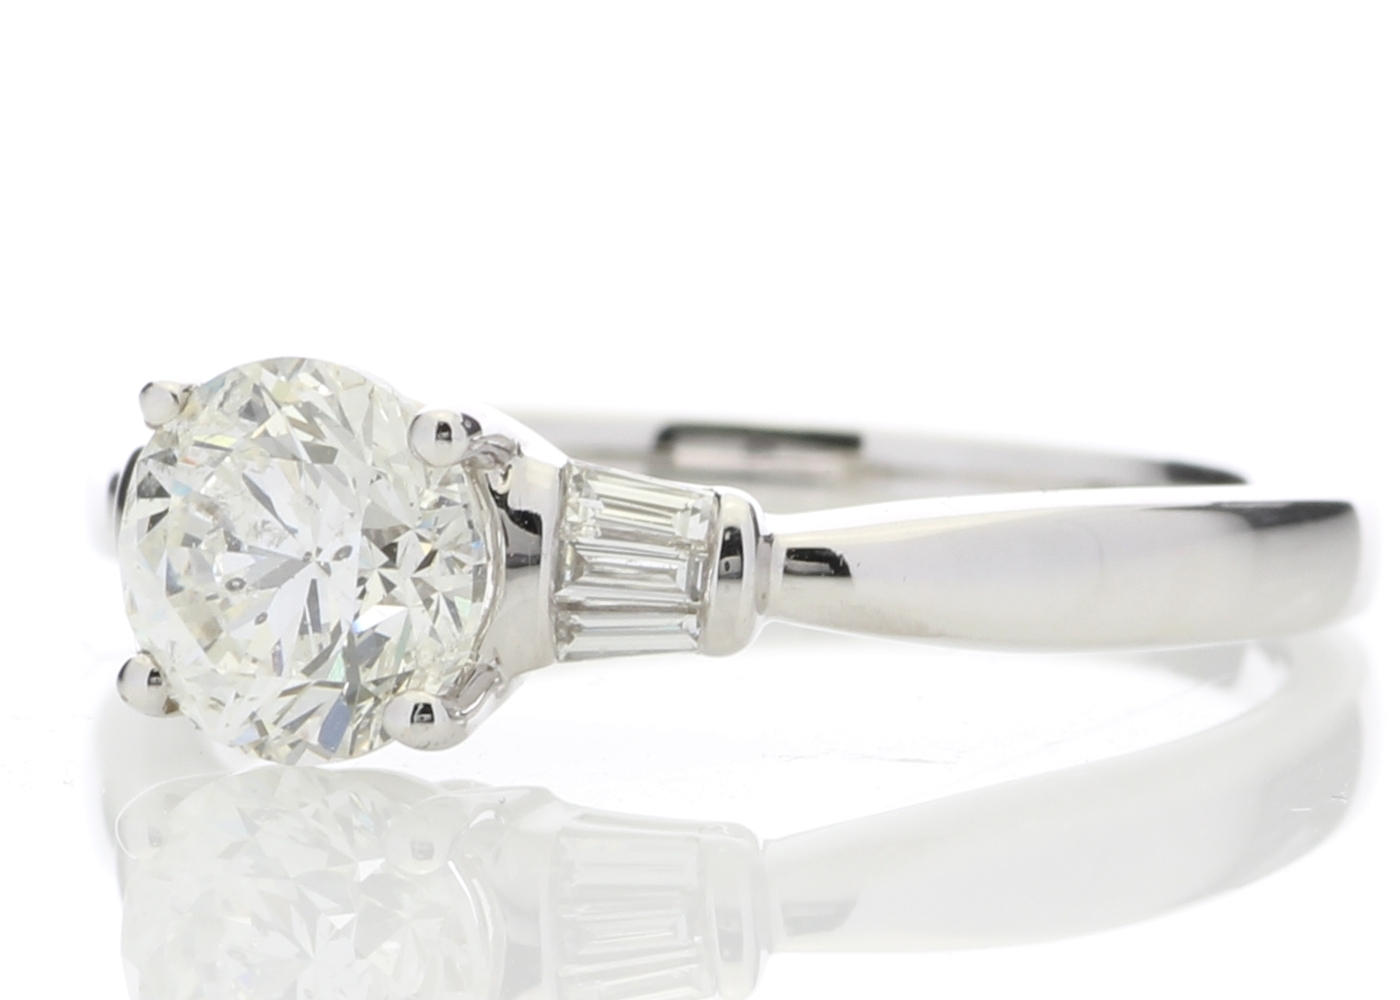 18k White Gold Diamond Ring With Baguette 1.15 Carats - Image 2 of 5